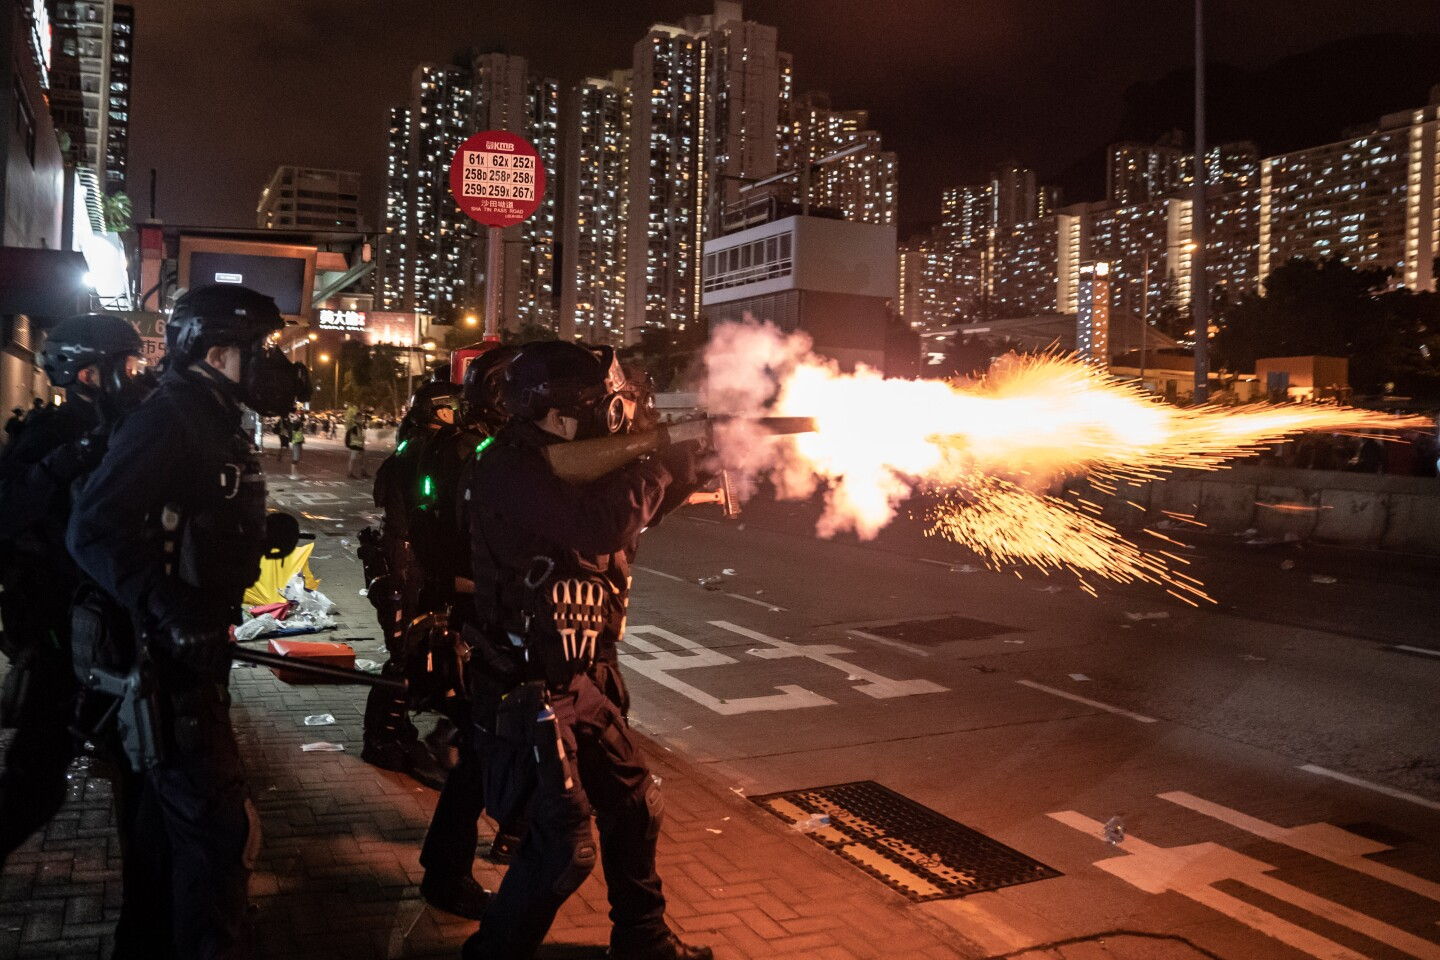 """HONG KONG, CHINA - AUGUST 5: Riot police fire tear gas at protesters during a demonstration in Wong Tai Sin District on August 5, 2019 in Hong Kong, China. Pro-democracy protesters have continued rallies on the streets of Hong Kong against a controversial extradition bill since 9 June as the city plunged into crisis after waves of demonstrations and several violent clashes. Hong Kong's Chief Executive Carrie Lam apologized for introducing the bill and declared it """"dead"""", however protesters have continued to draw large crowds with demands for Lam's resignation and completely withdraw the bill. (Photo by Anthony Kwan/Getty Images) ** OUTS - ELSENT, FPG, CM - OUTS * NM, PH, VA if sourced by CT, LA or MoD **"""